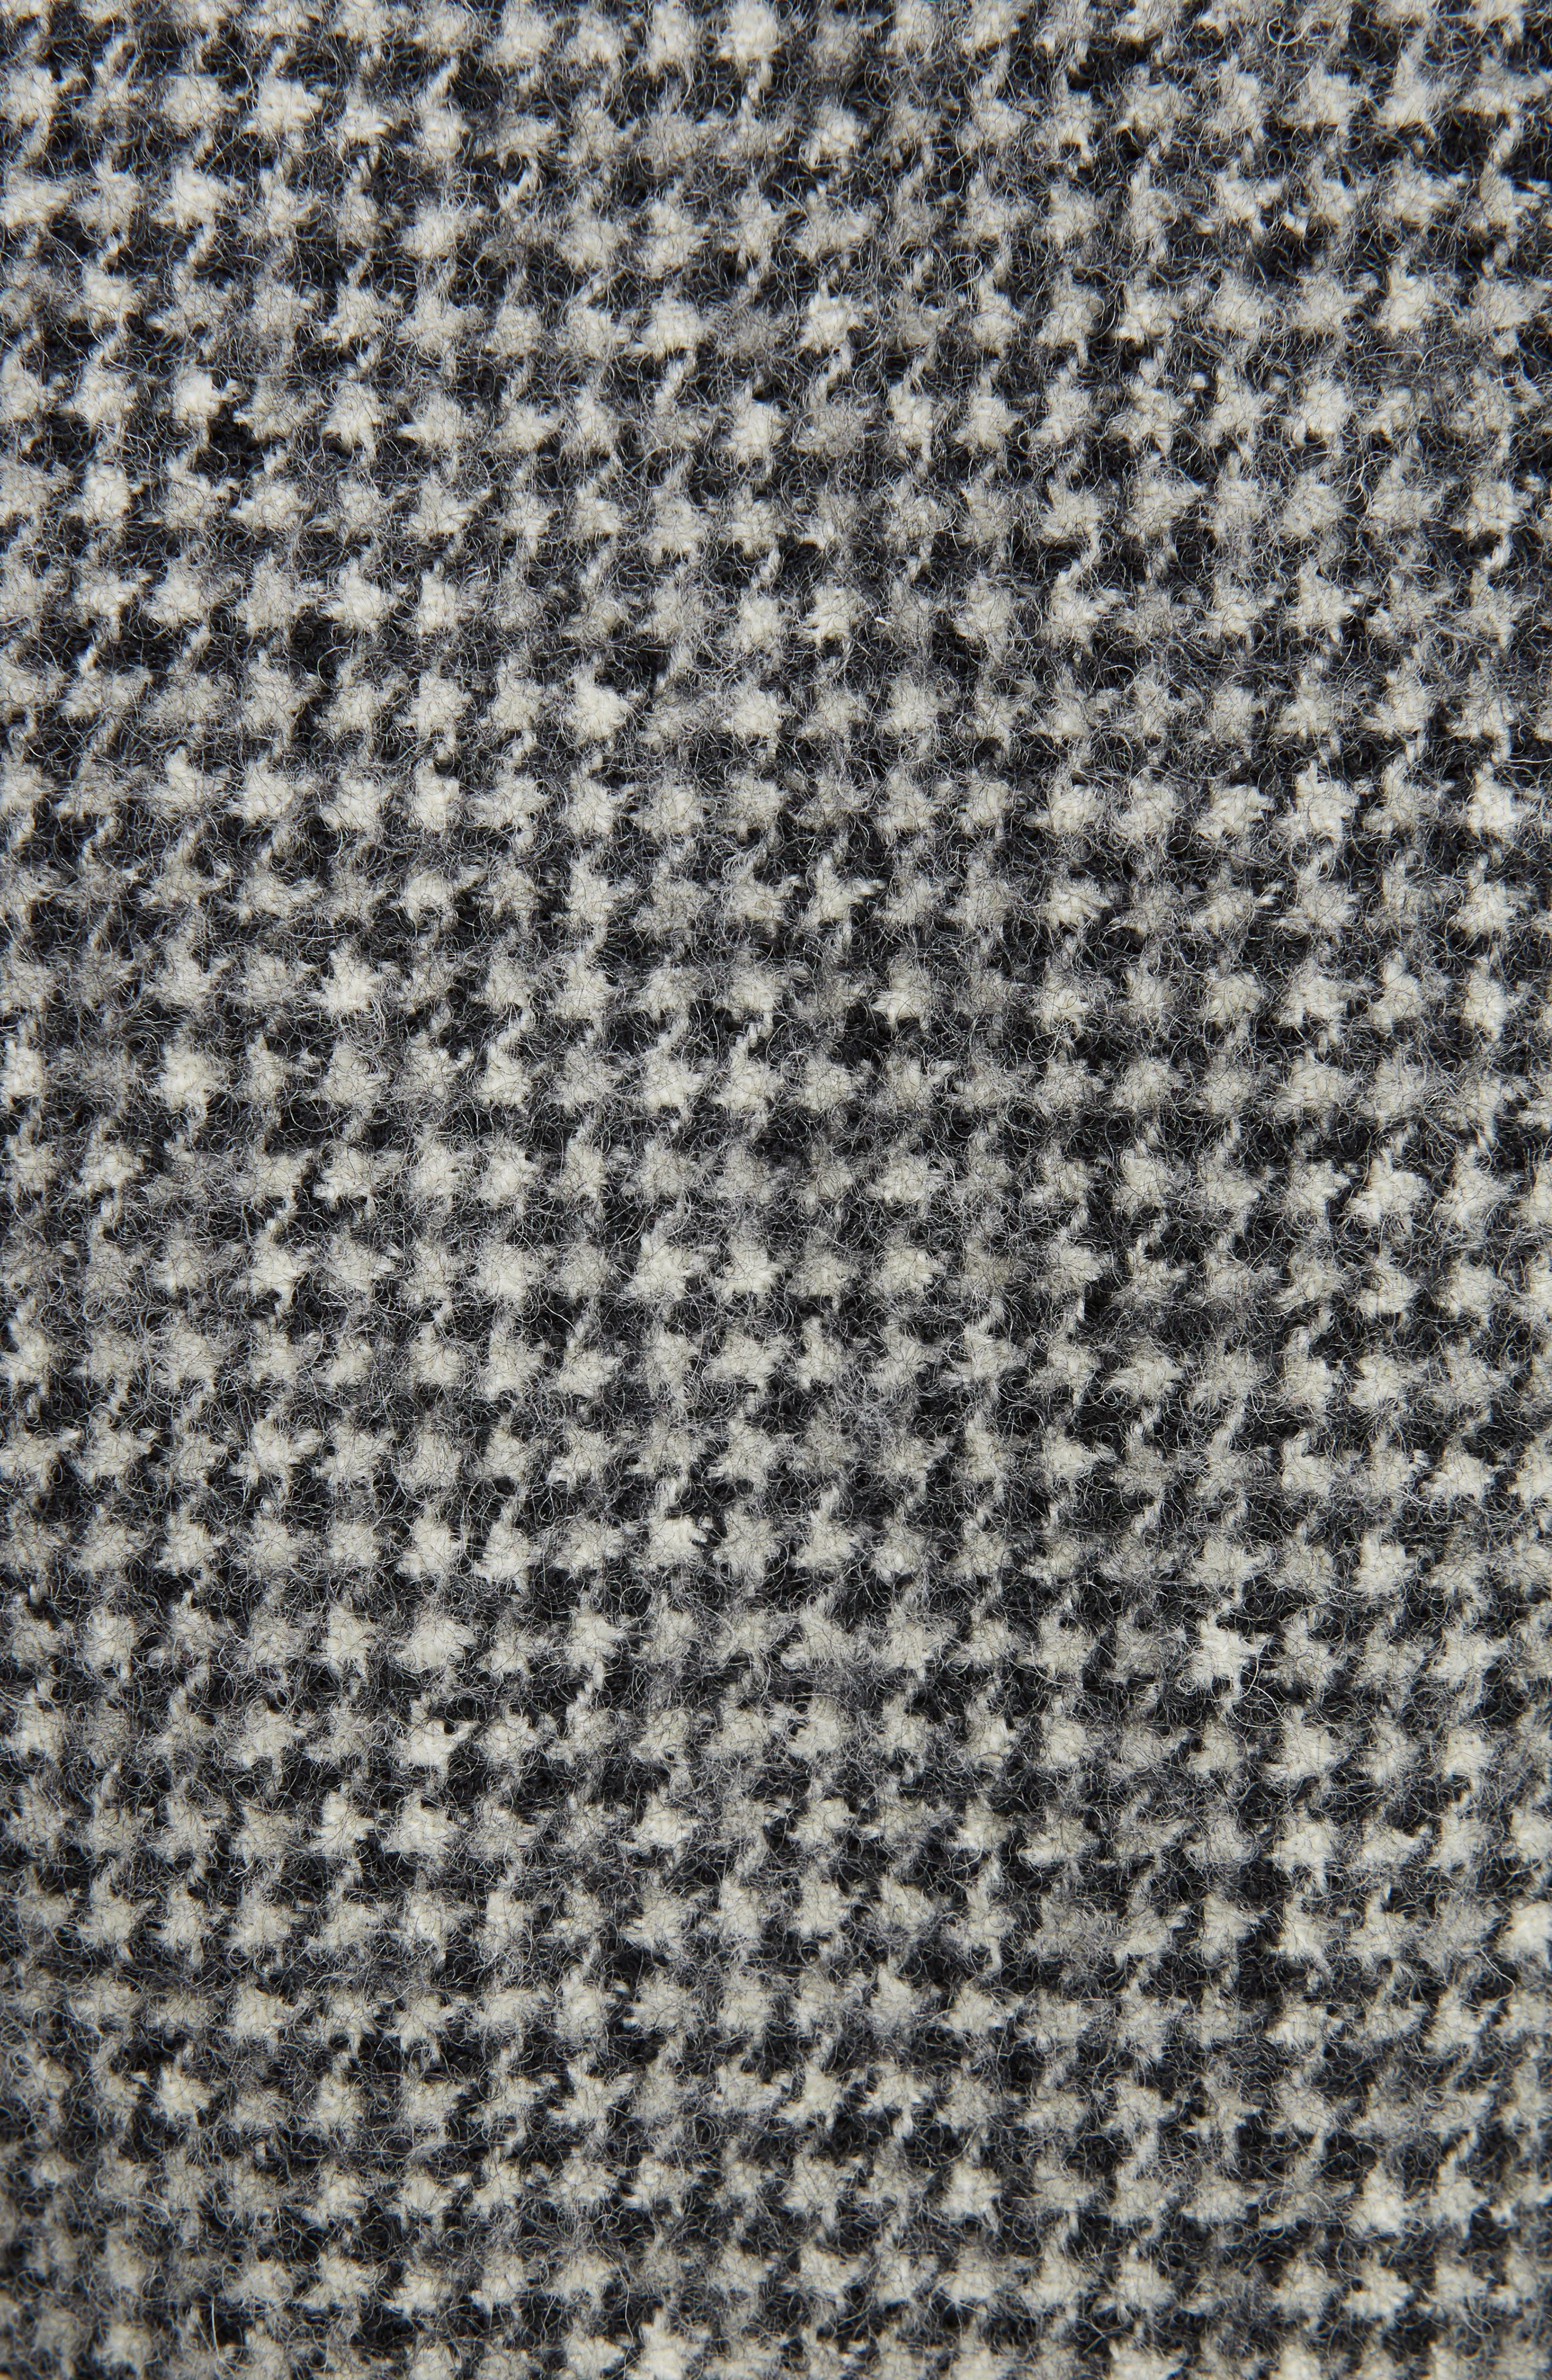 Houndstooth Wool Zip Front Jacket,                             Alternate thumbnail 5, color,                             021